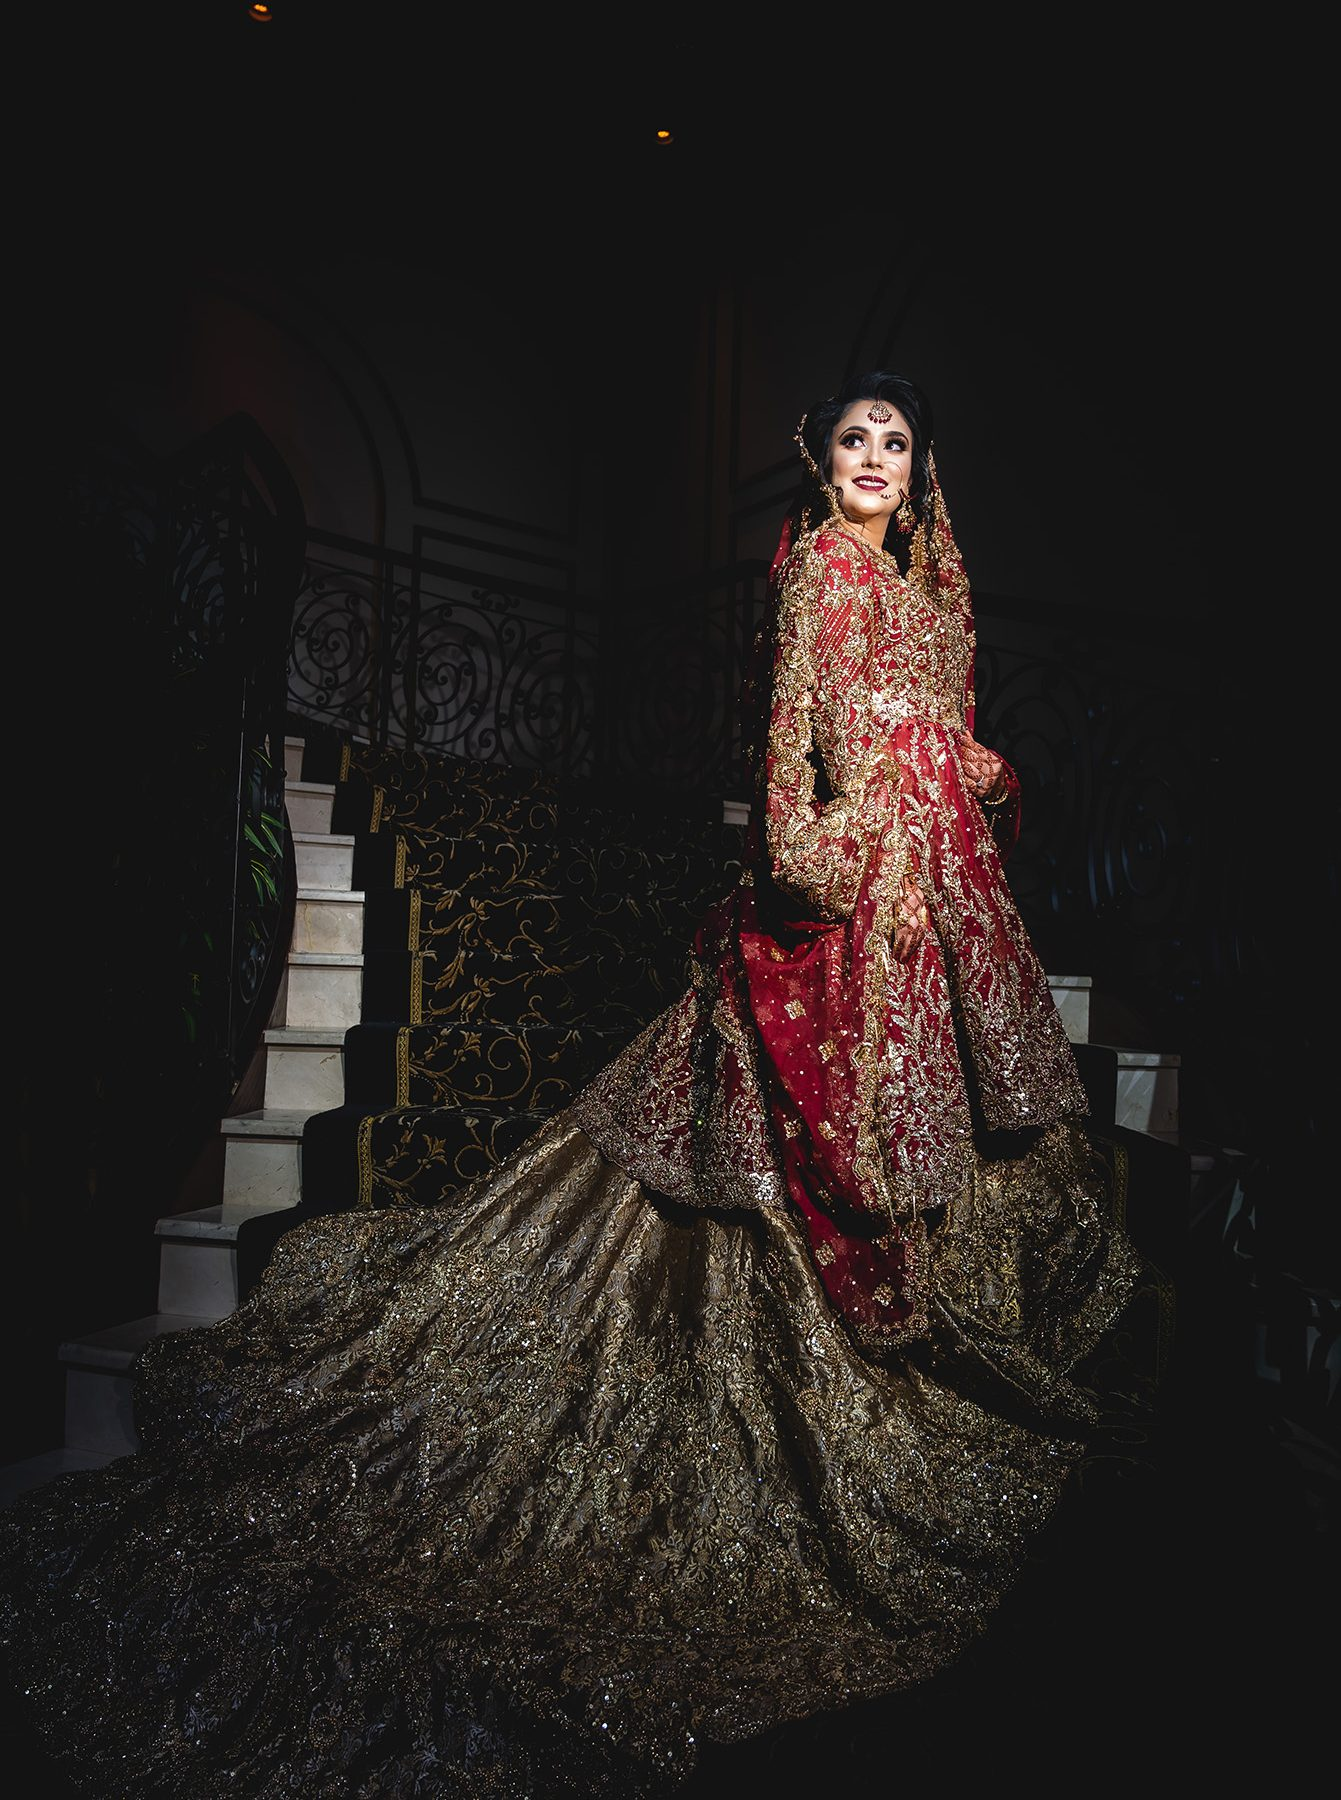 The-Tides-Estate-Wedding-Photo-1341x1800 South Asian Weddings